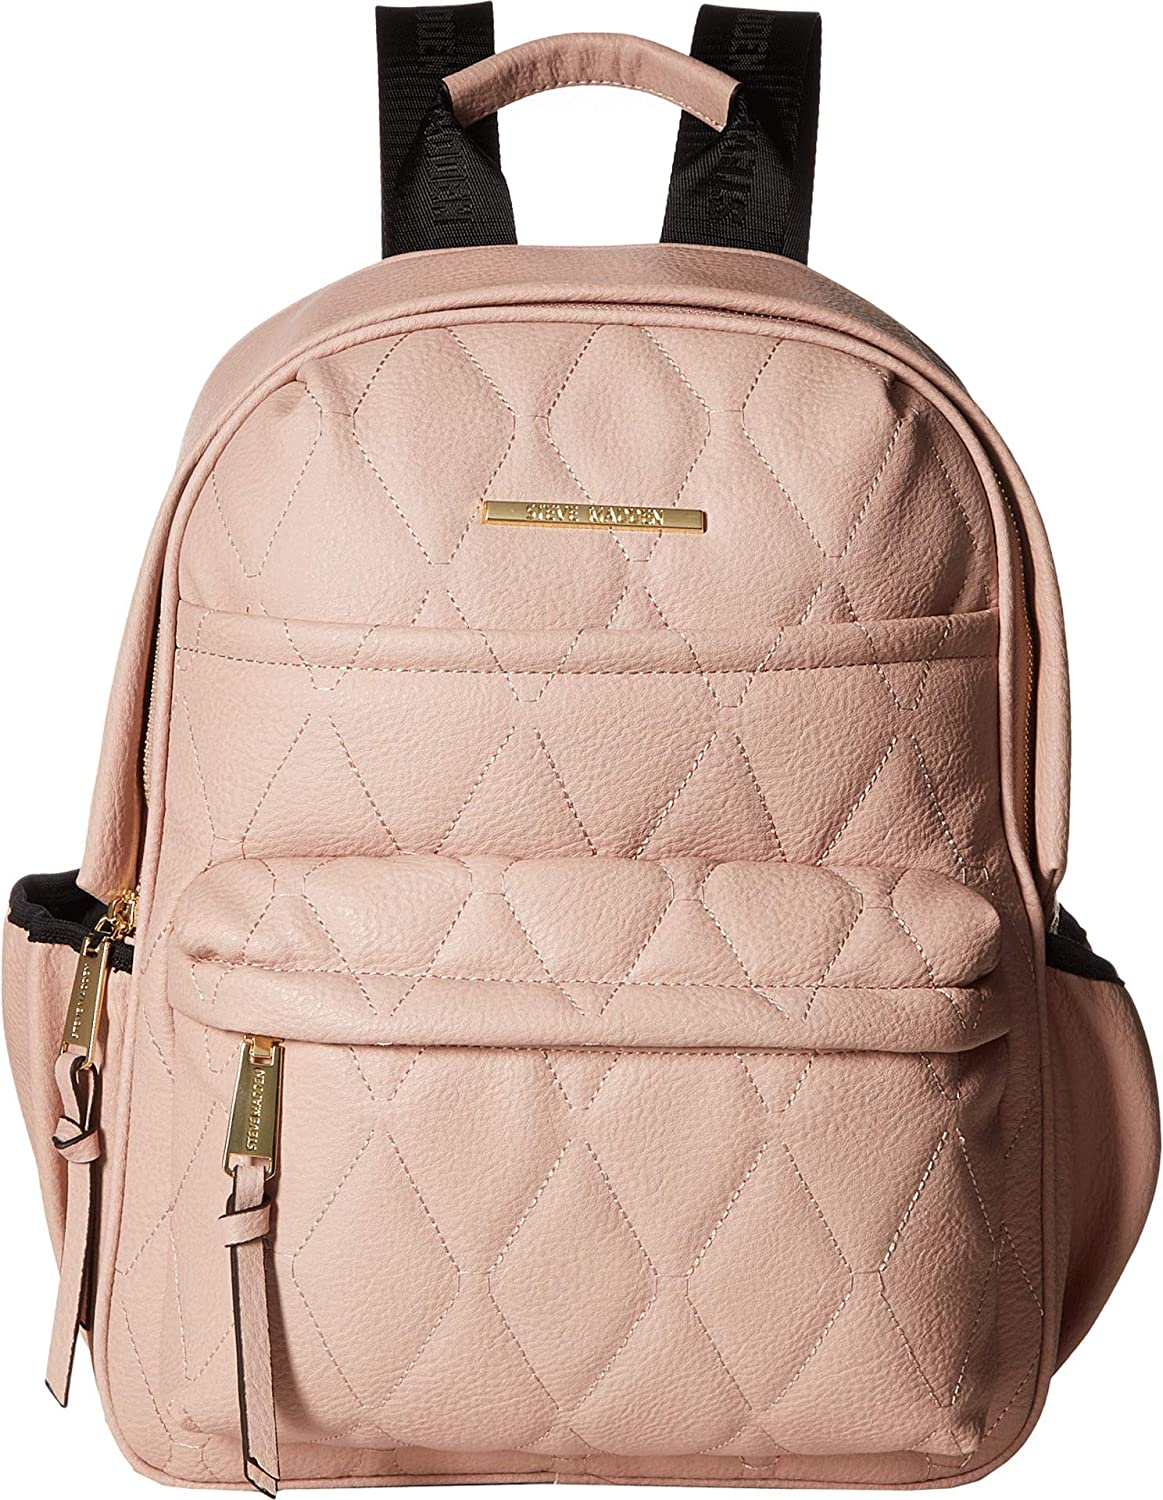 b2d0fb6e33 Amazon.com: Steve Madden Women's Bforce Quilted Backpack Blush One Size:  Clothing